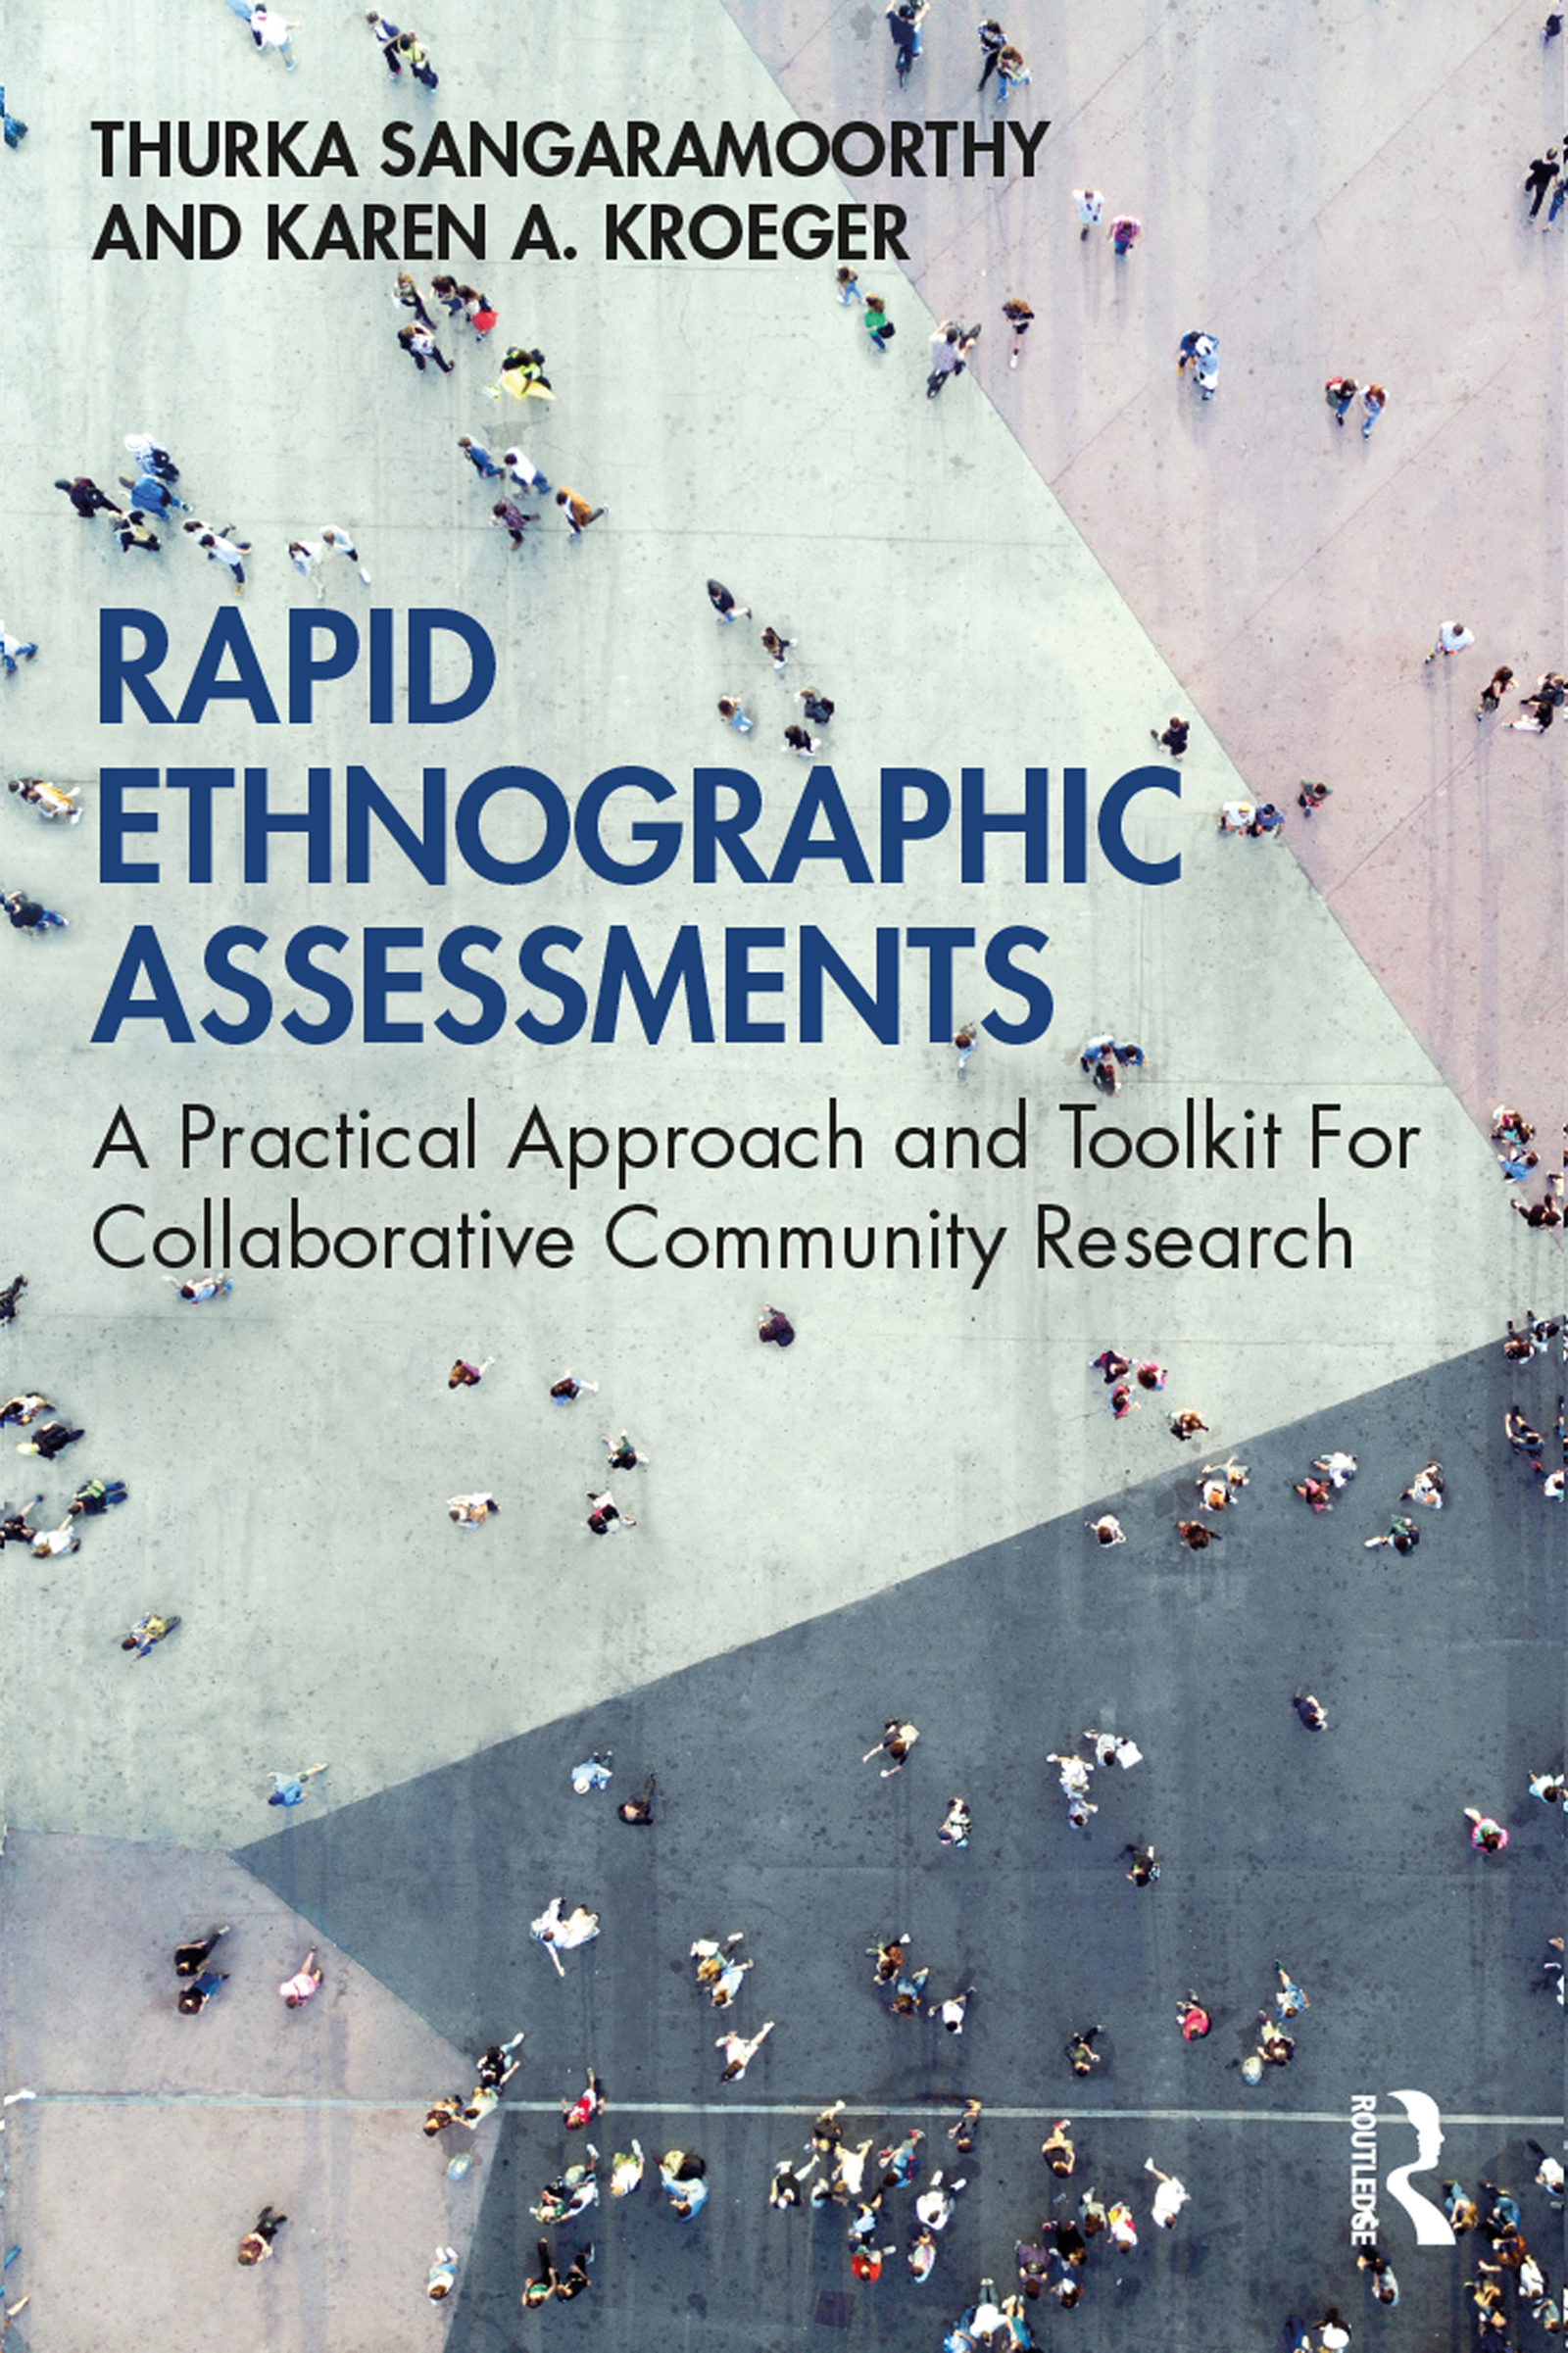 Rapid Ethnographic Assessments: A Practical Approach and Toolkit For Collaborative Community Research book cover